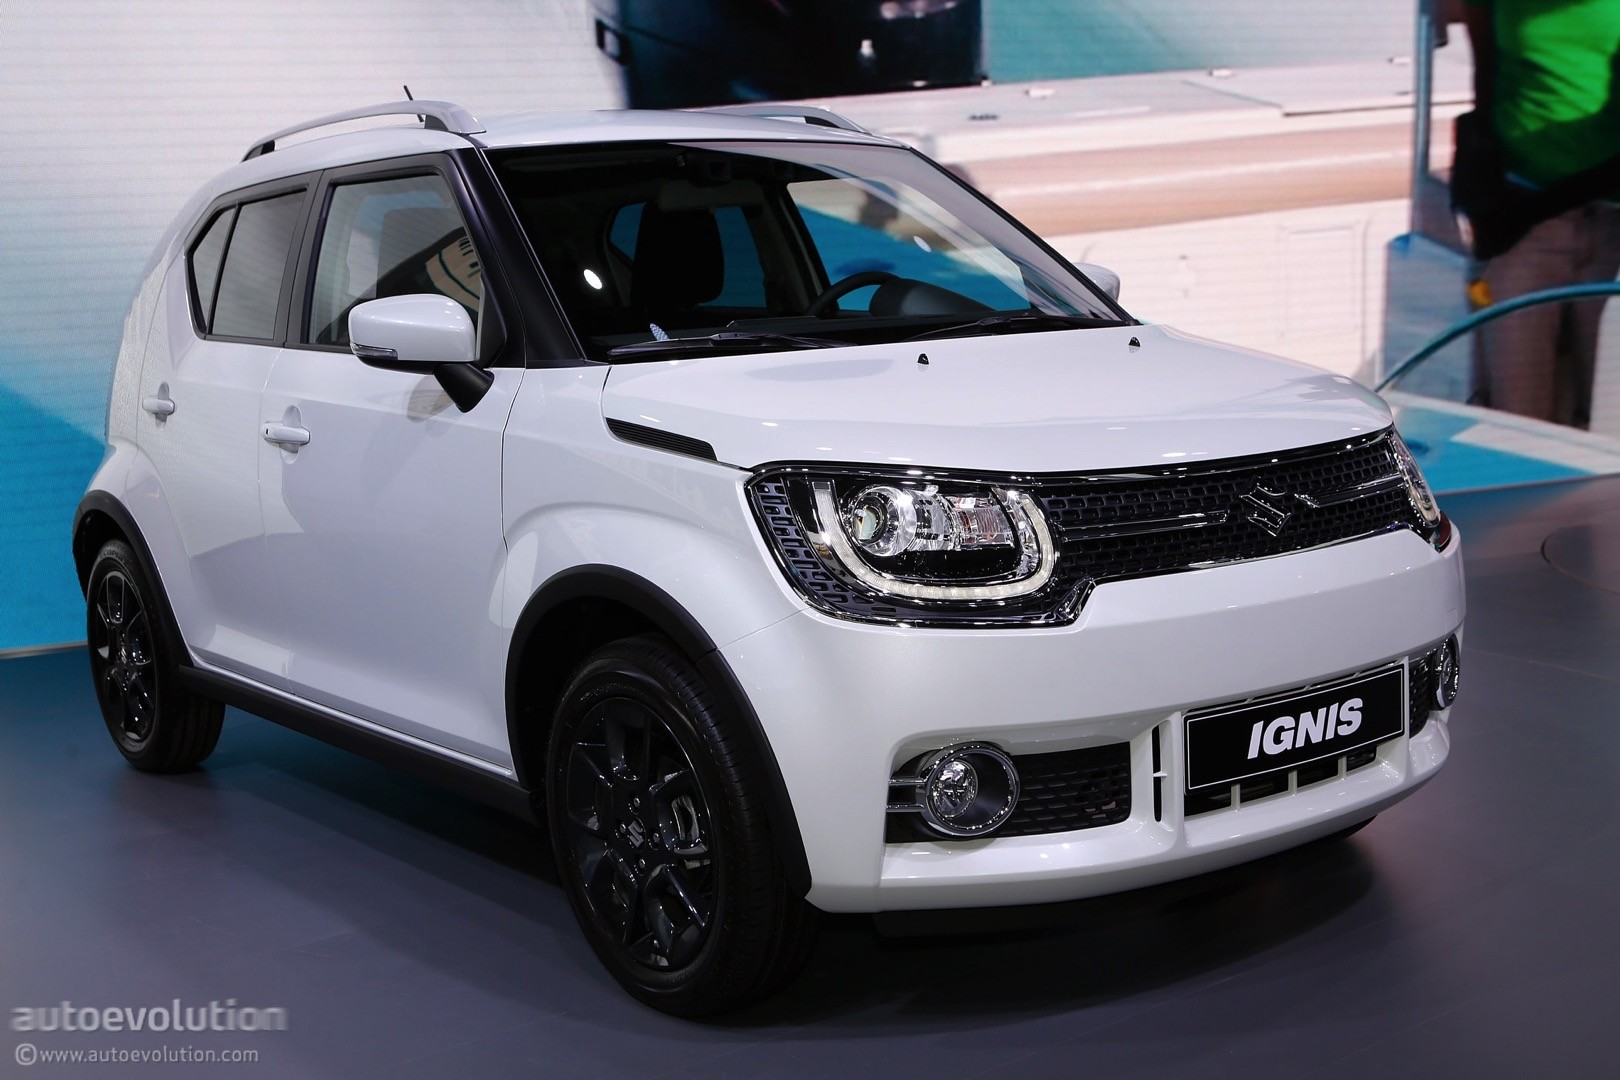 2017 Suzuki Ignis Locks Down On Paris, SX4 S-Cross ...